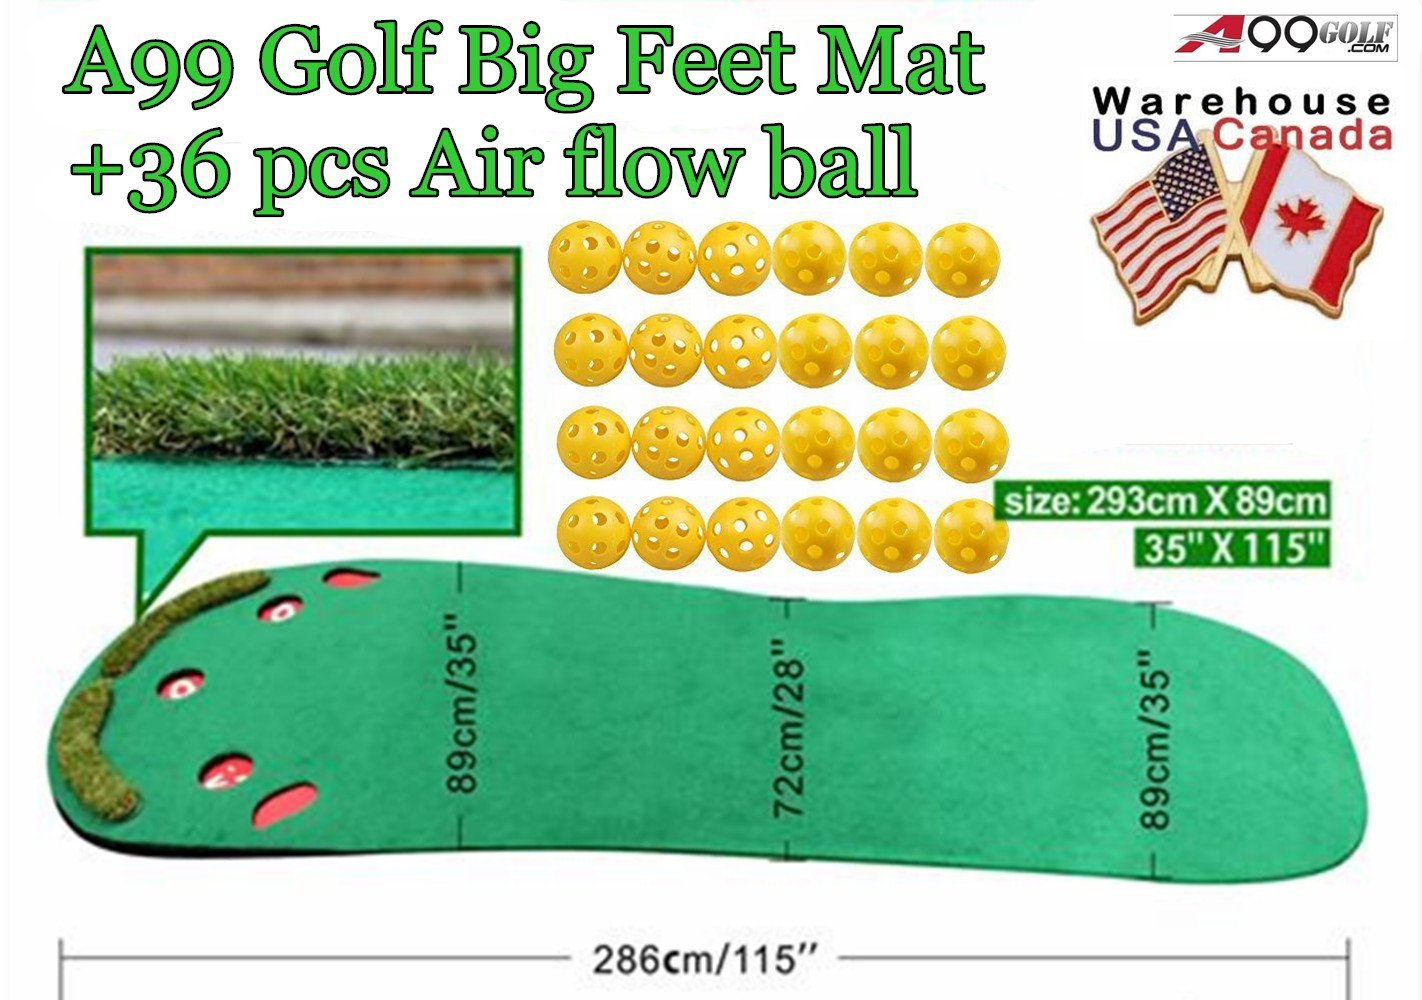 A99 Golf Big Feet Golf Practice Putting Green Mats